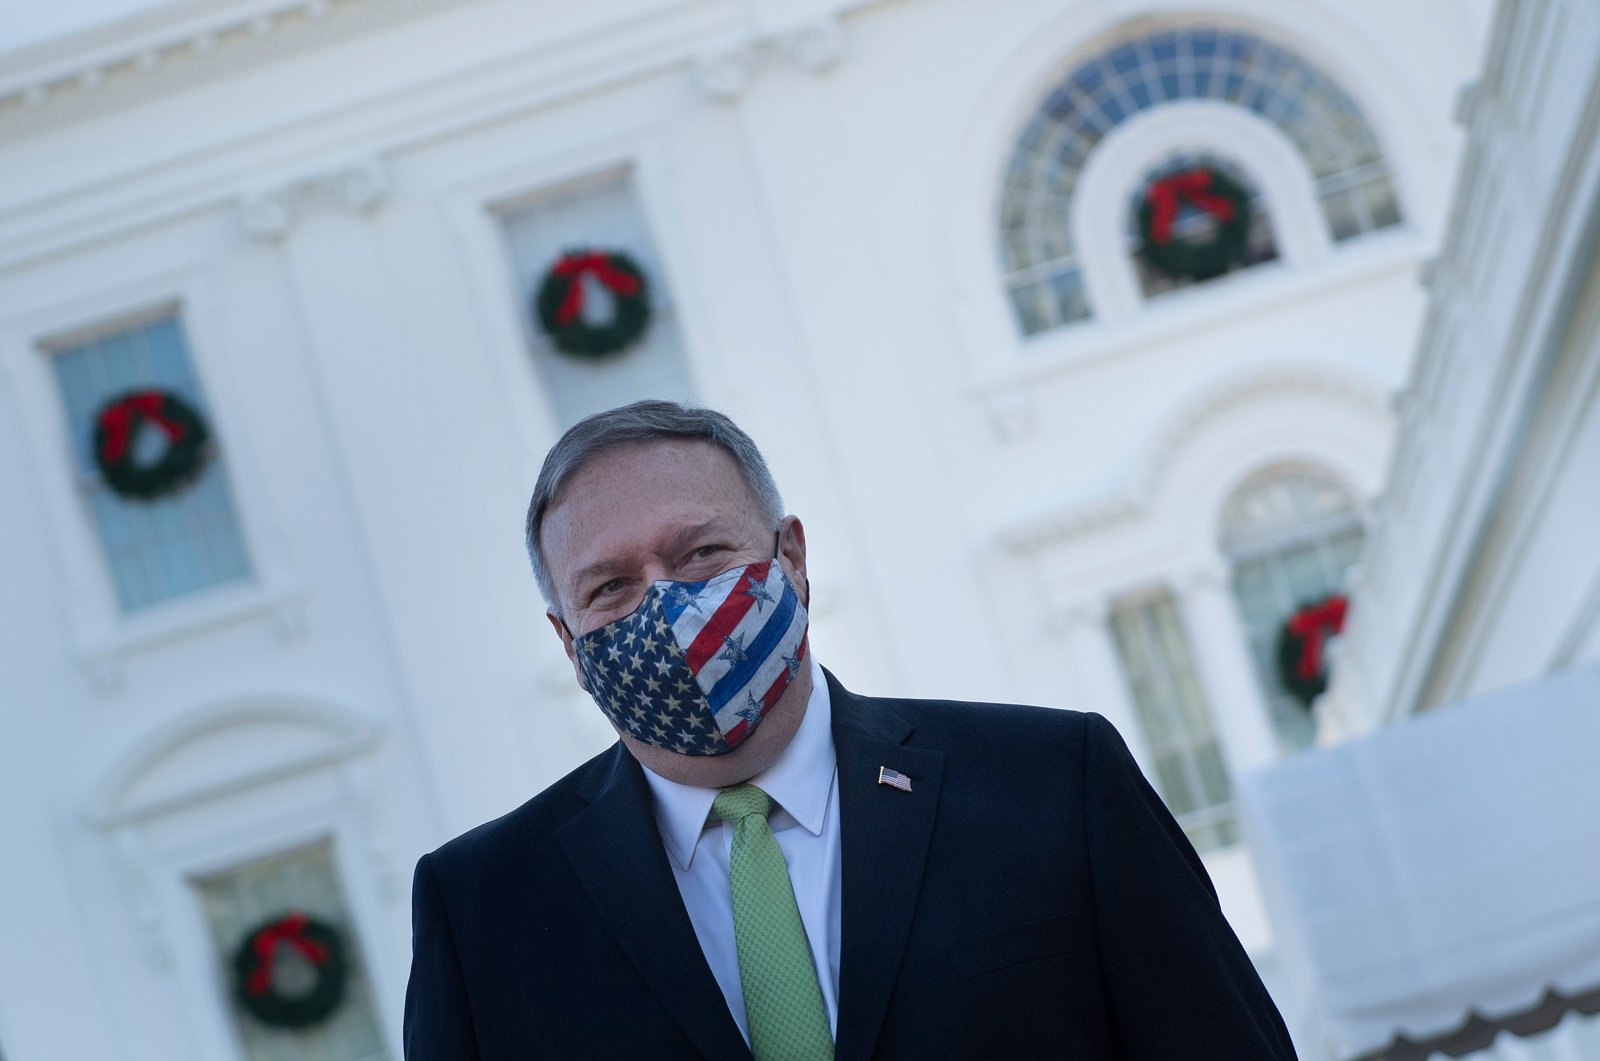 In this file photo, U.S. Secretary of State Mike Pompeo leaves the White House after visiting with the Trump family in Washington, D.C., on Dec. 11, 2020. (AFP Photo)